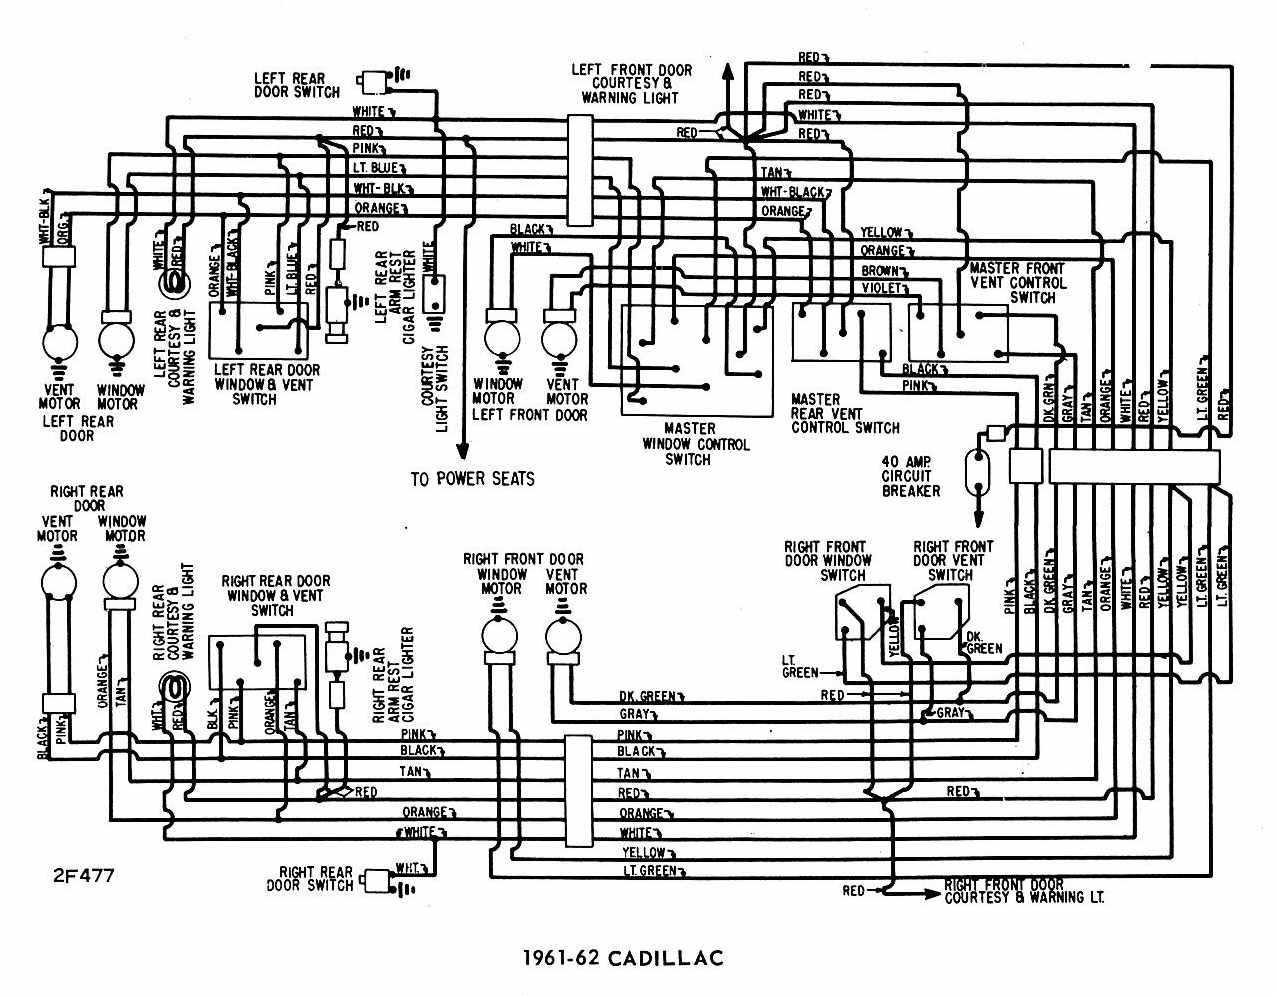 97 Cadillac Deville Fuse Box Diagram Simple Guide About Wiring 1997 Land Rover Discovery Sts In The Back Seat